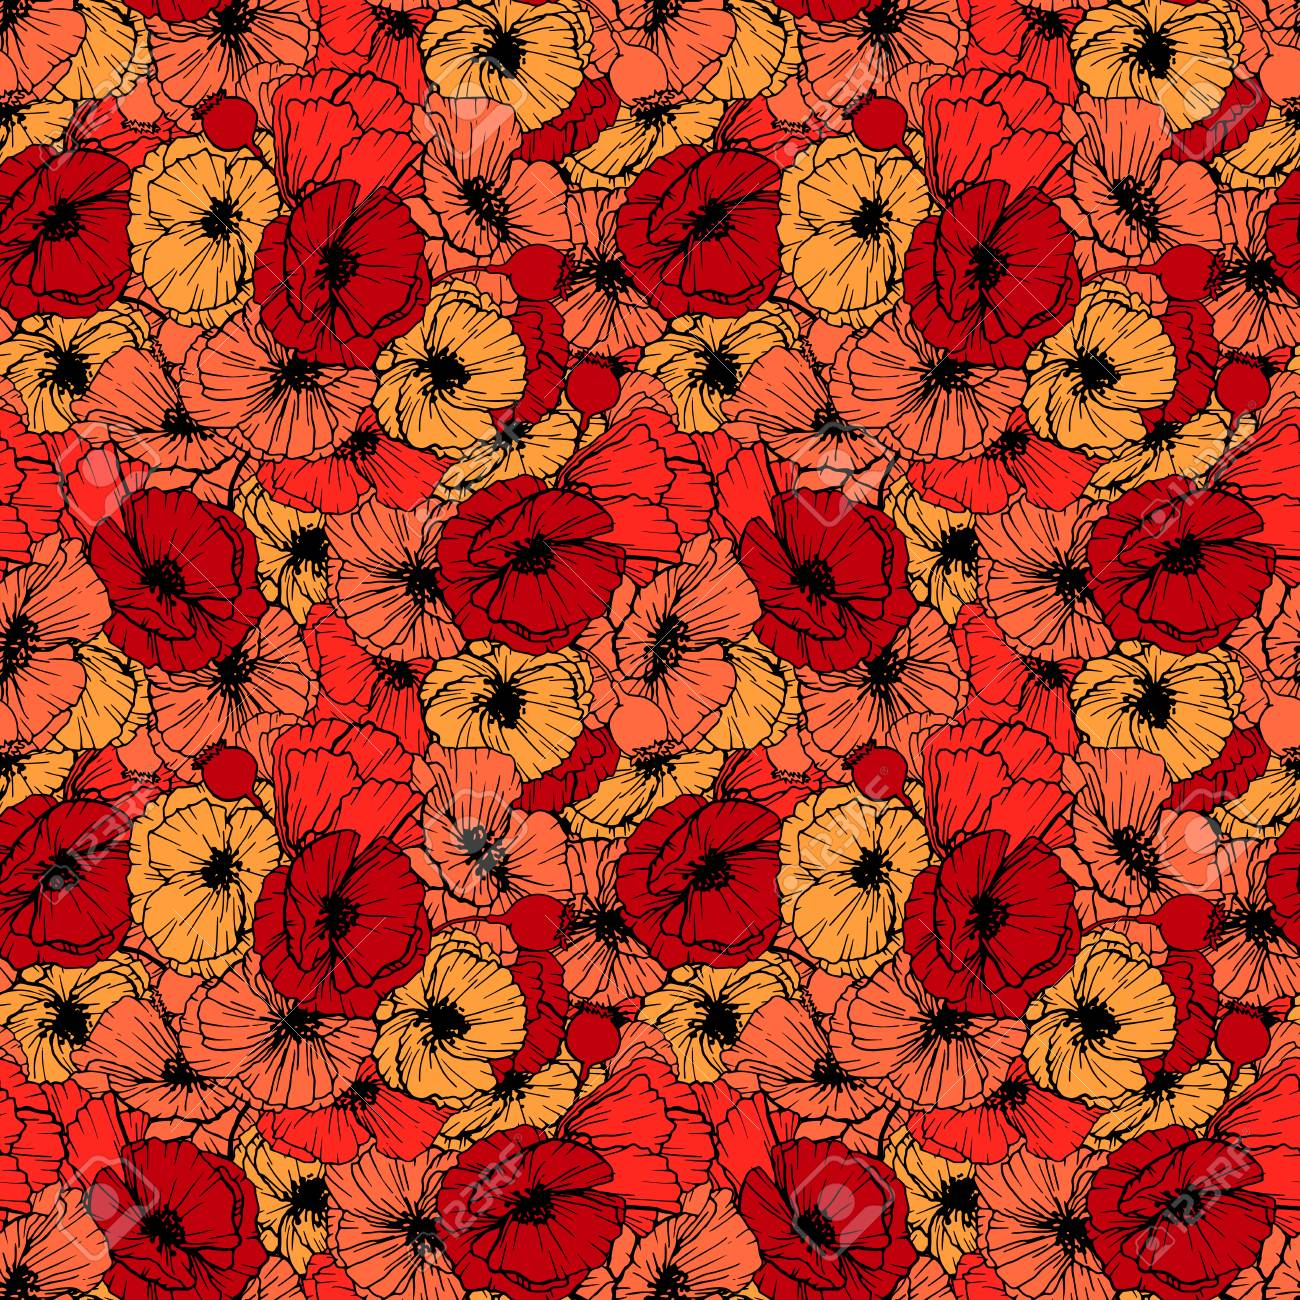 ddf1b3bd3d641 Red Poppies Seamless Pattern. Summer Flowers in Linear Engraving..